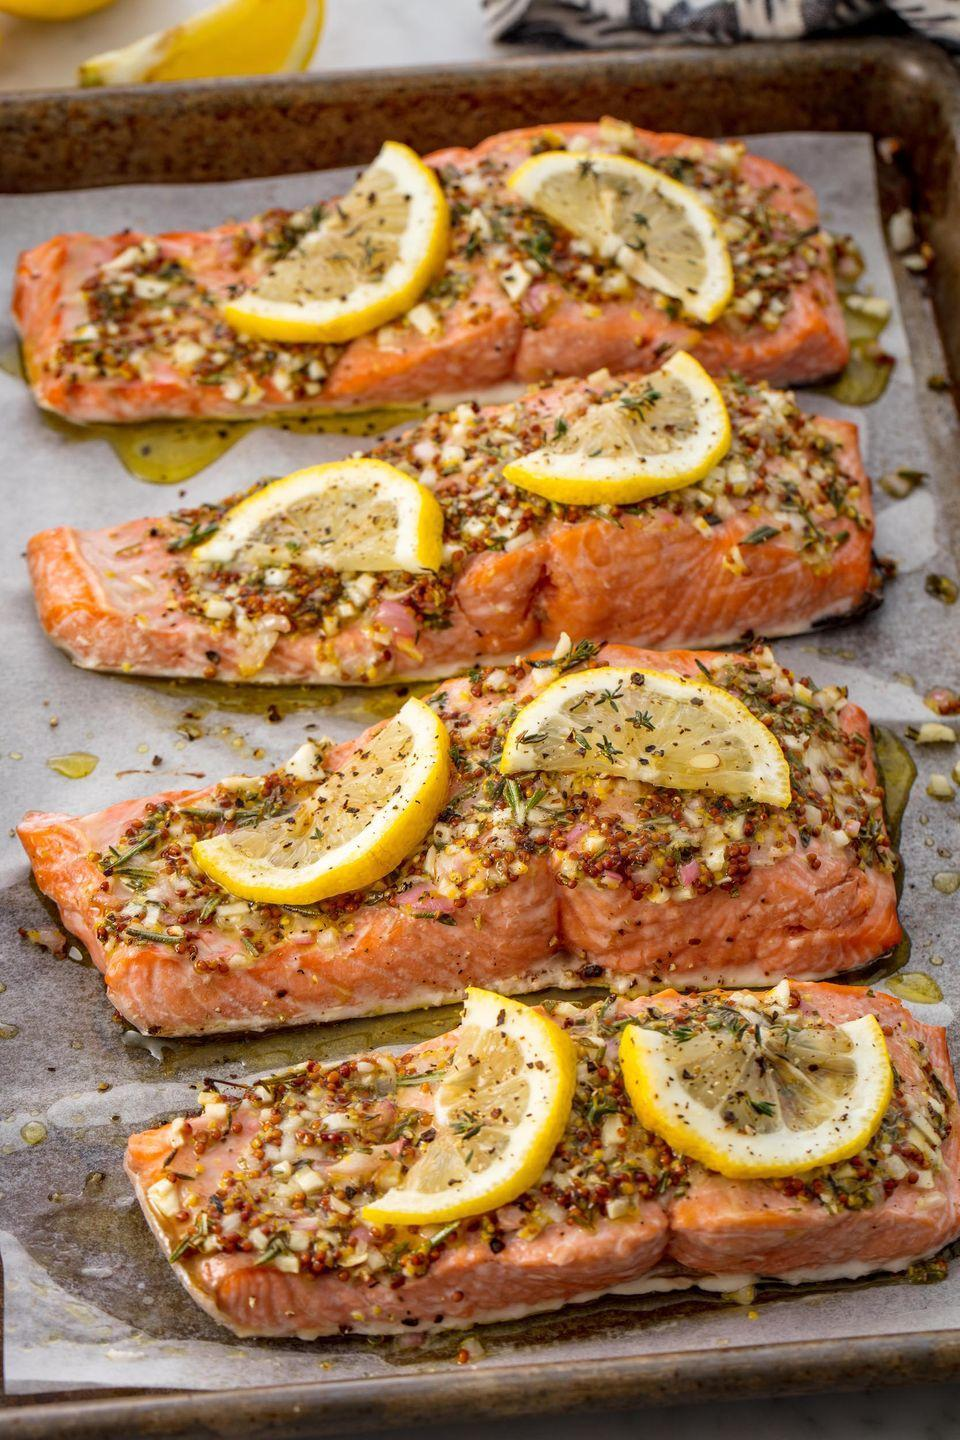 """<p>An extremely addicting and easy salmon recipe for your arsenal.</p><p>Get the recipe from <a href=""""https://www.delish.com/cooking/recipe-ideas/recipes/a55654/best-broiled-salmon-recipe/"""" rel=""""nofollow noopener"""" target=""""_blank"""" data-ylk=""""slk:Delish"""" class=""""link rapid-noclick-resp"""">Delish</a>. </p>"""